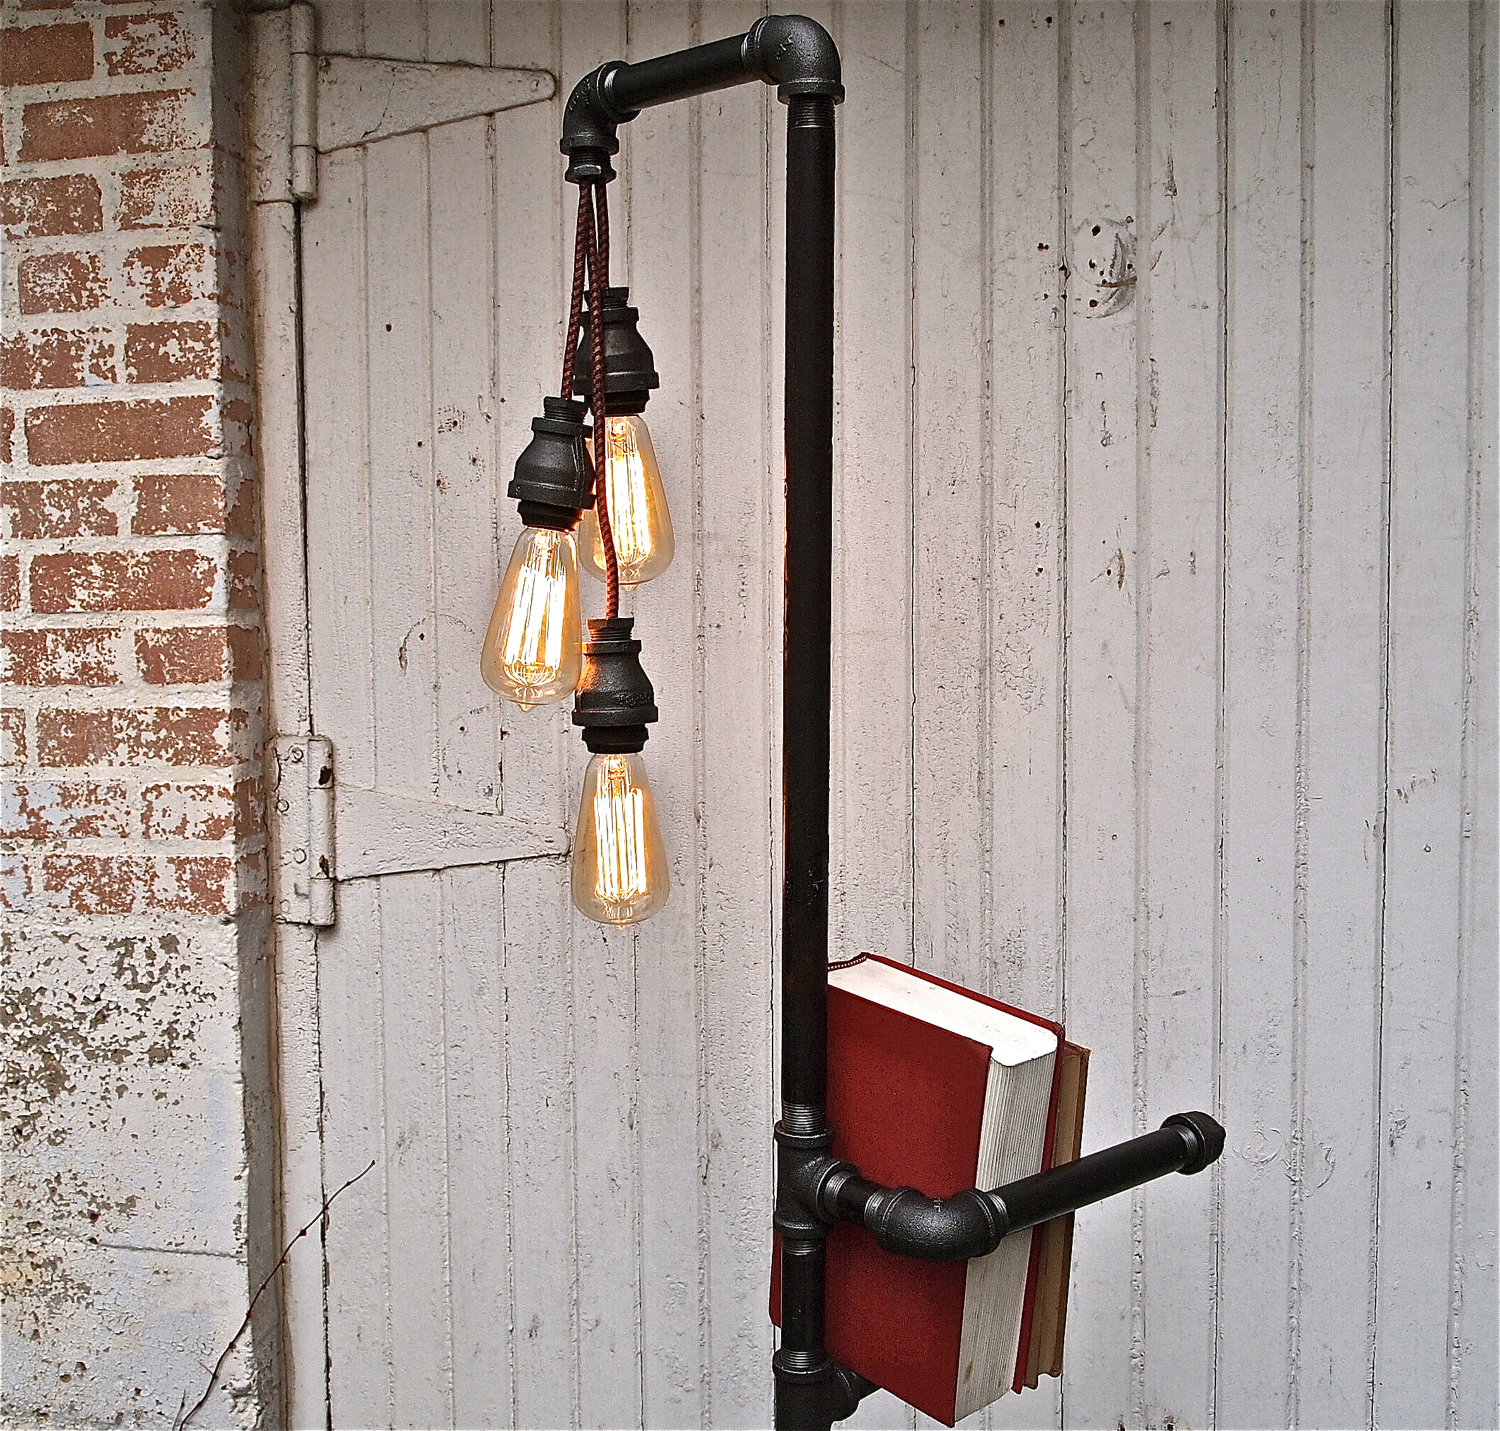 The collectionaire pipe dreams with stella bleu designs for Homemade floor lamp ideas